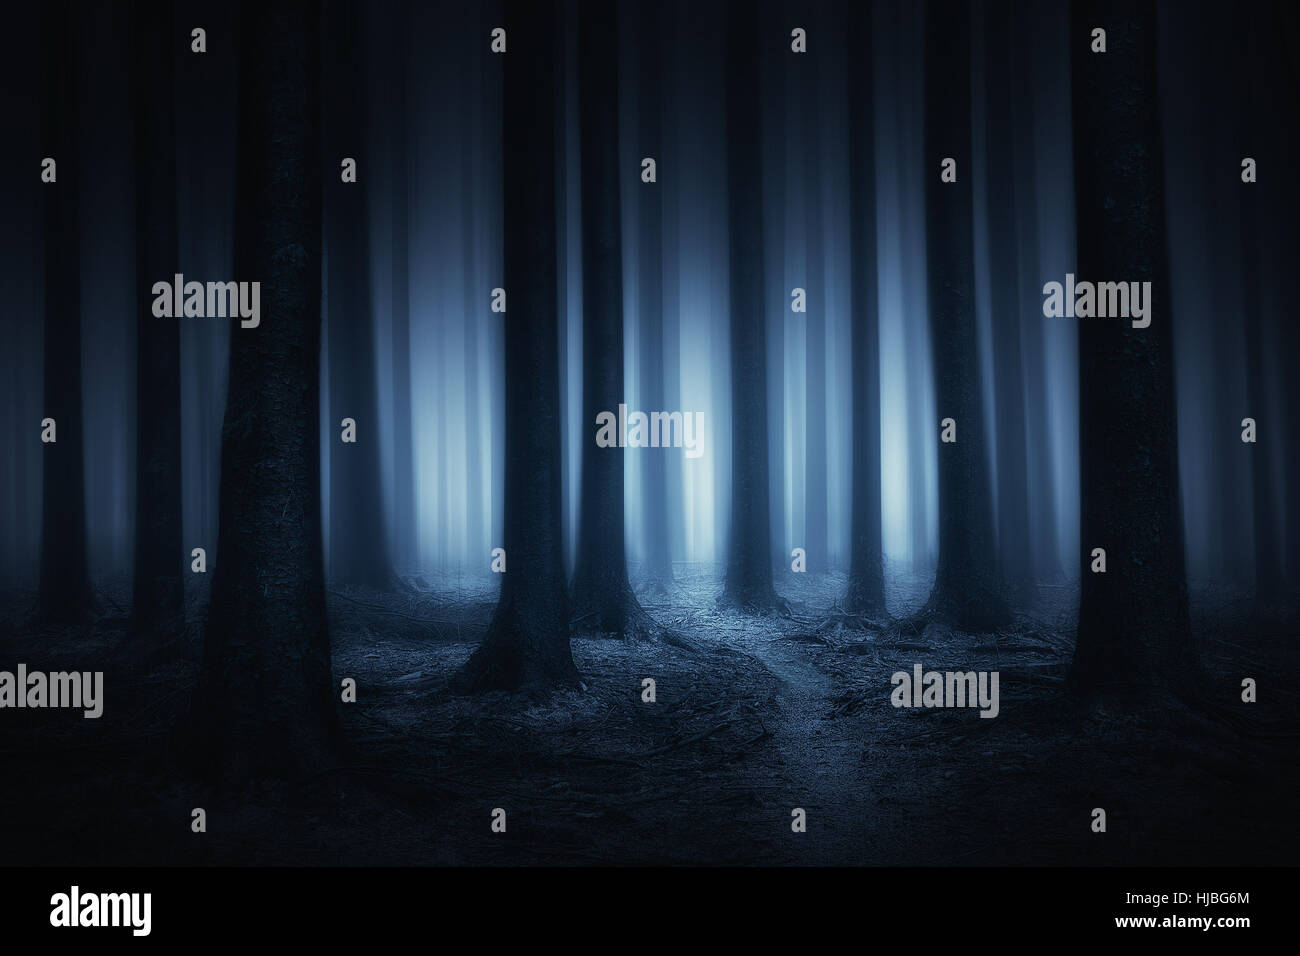 dark forest photos dark forest images alamy. Black Bedroom Furniture Sets. Home Design Ideas